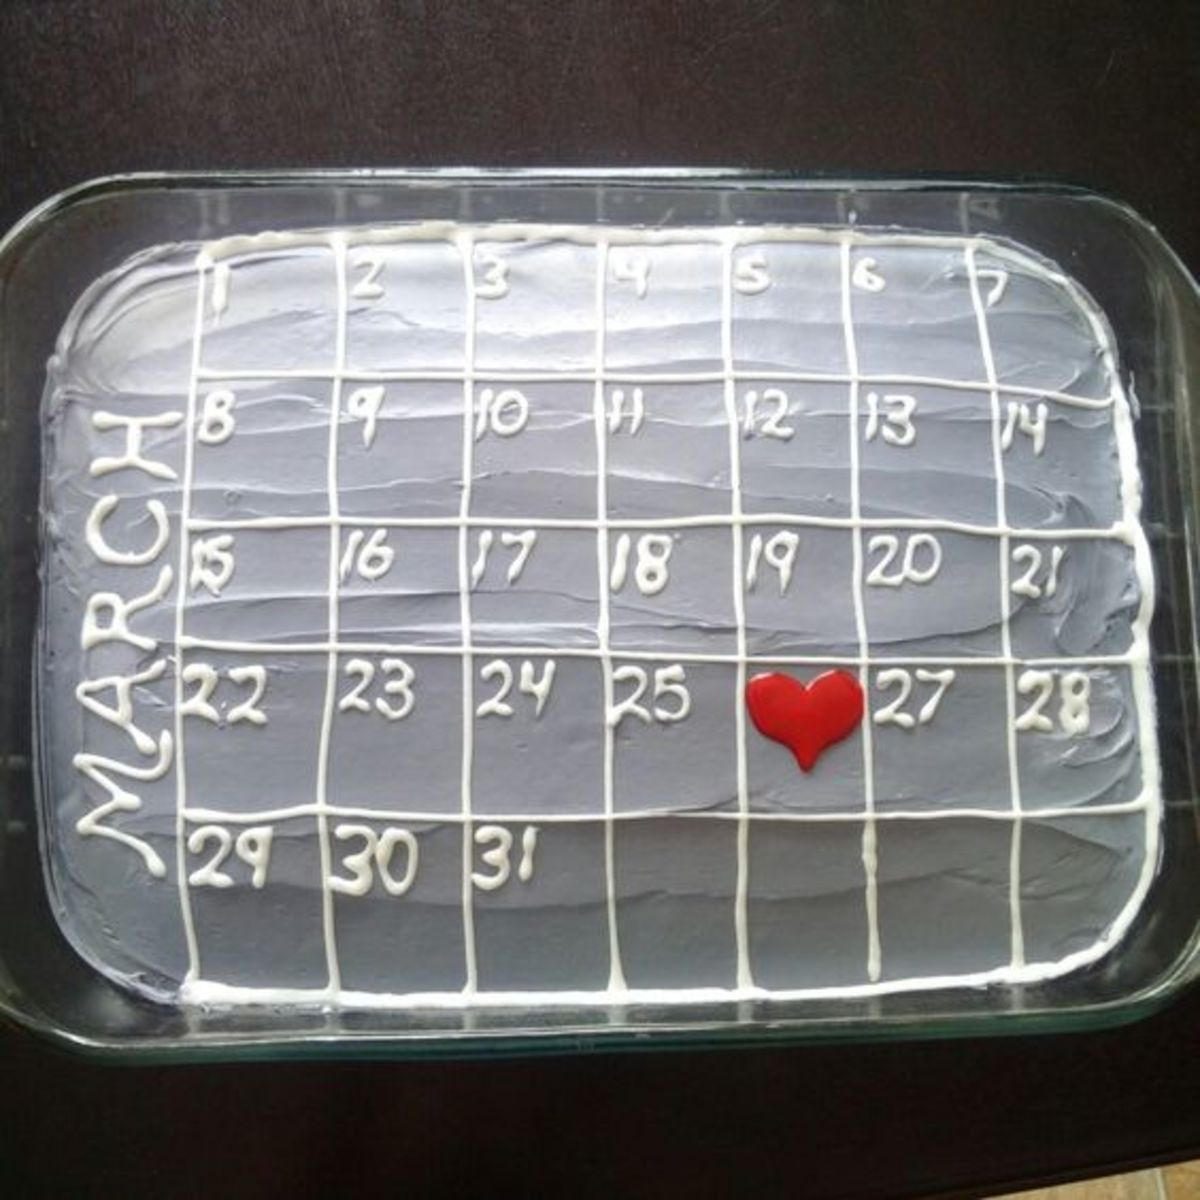 Calendar Cake | Easy DIY Anniversary Gift Ideas for Him